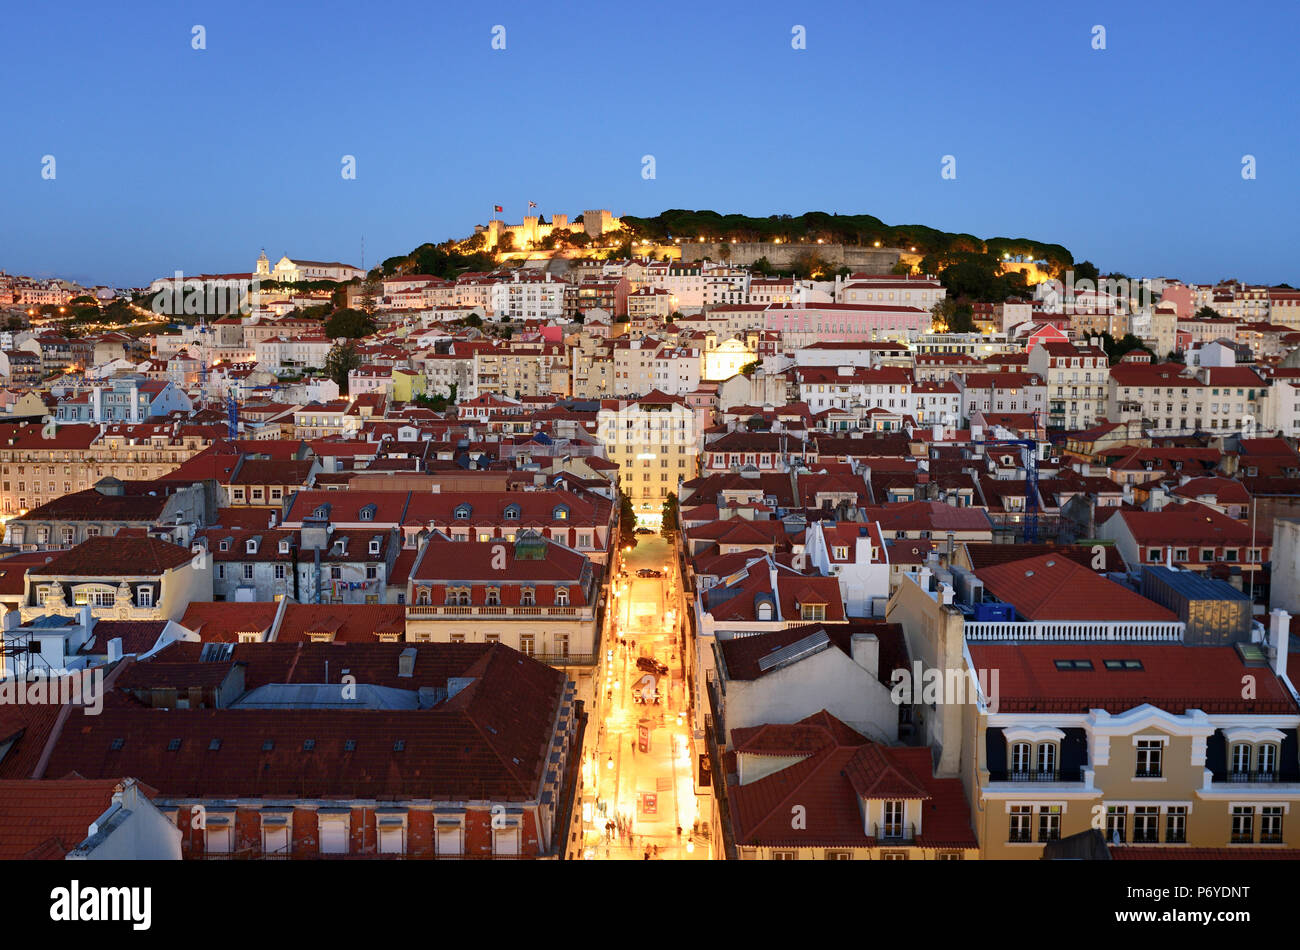 The historic centre (Baixa) and Sao Jorge castle at twilight. Lisbon, Portugal - Stock Image